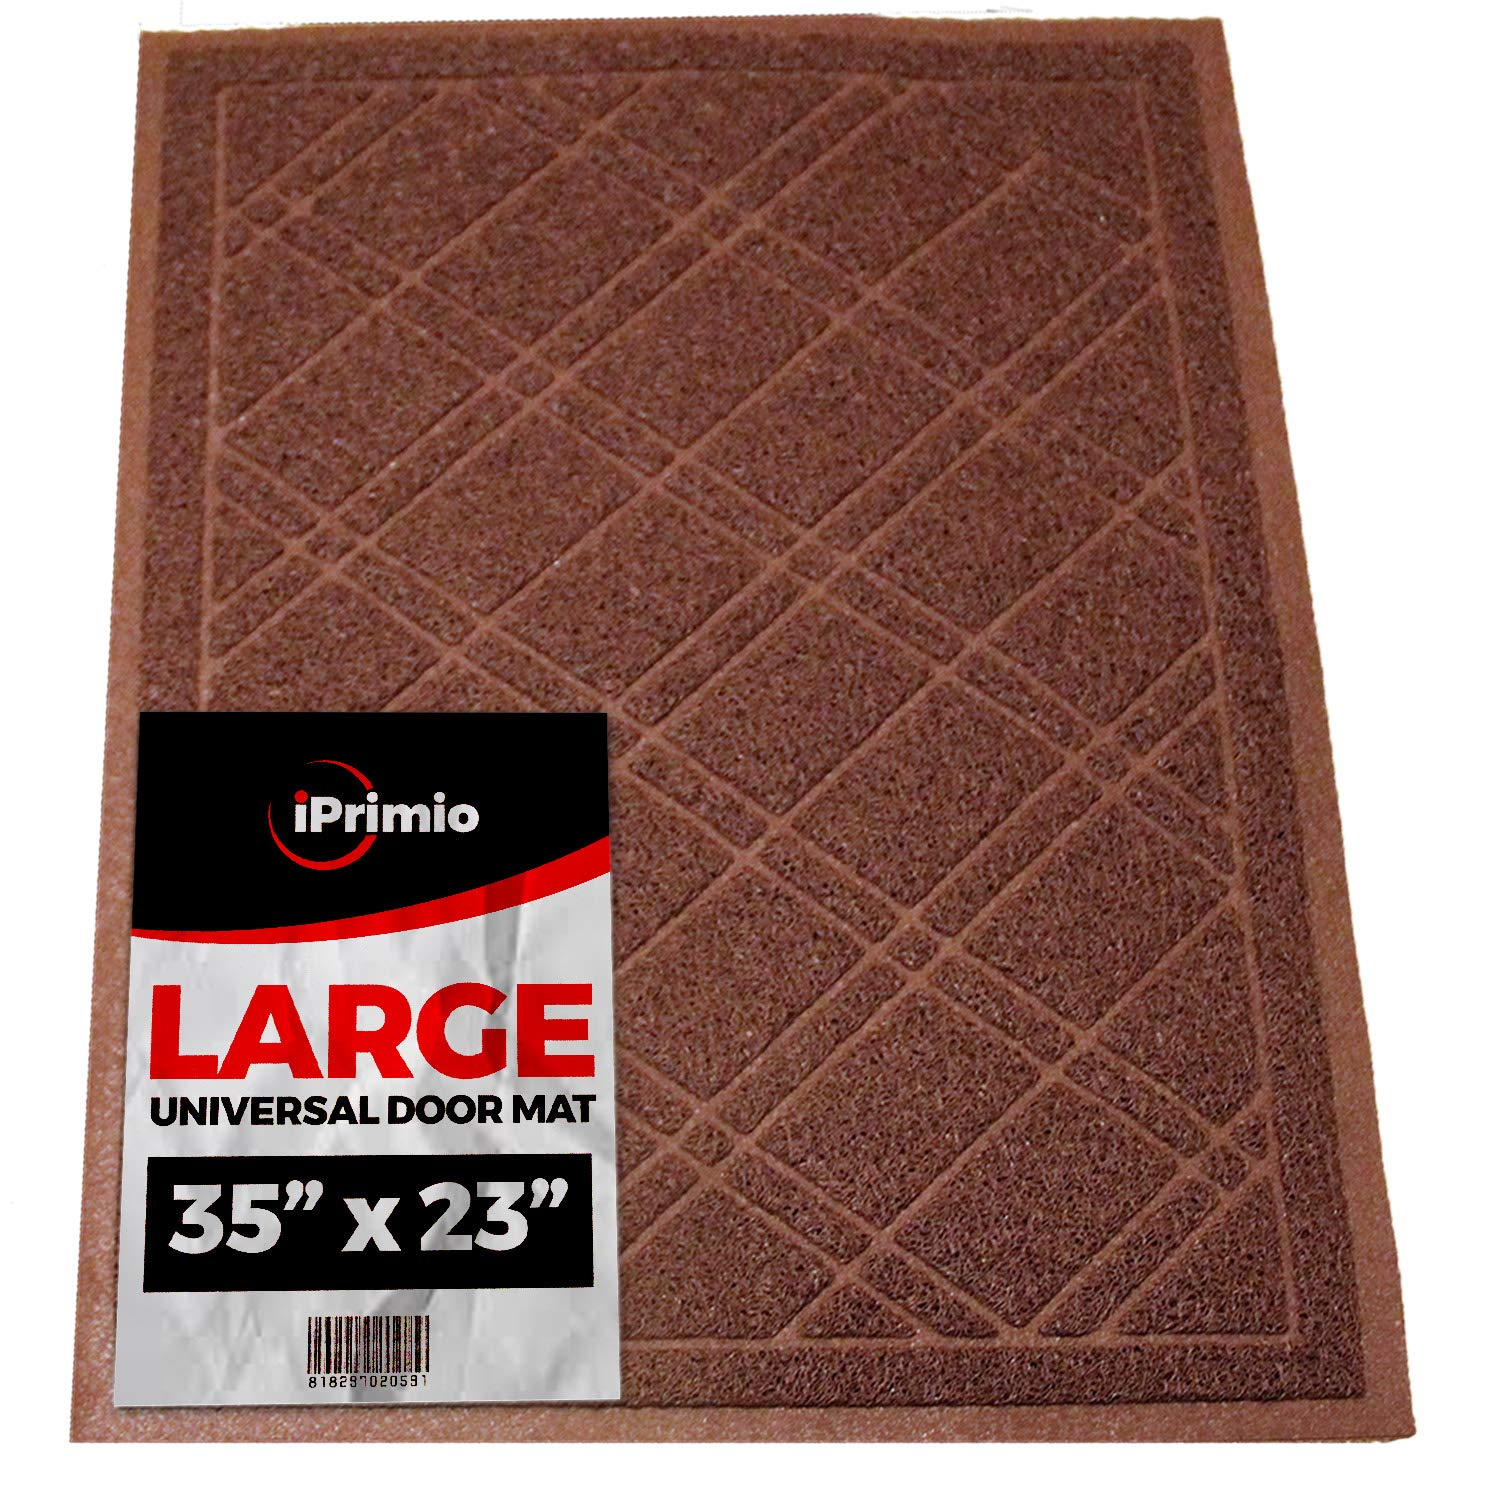 "SlipToGrip Universal Door Mat – Plaid Design Size 35"" x 23"" – Anti Slip, Durable & Washable – Duraloop Mesh Entrance Outdoor & Indoor Welcome Mat – Dirt and Dust Absorber by SlipToGrip"